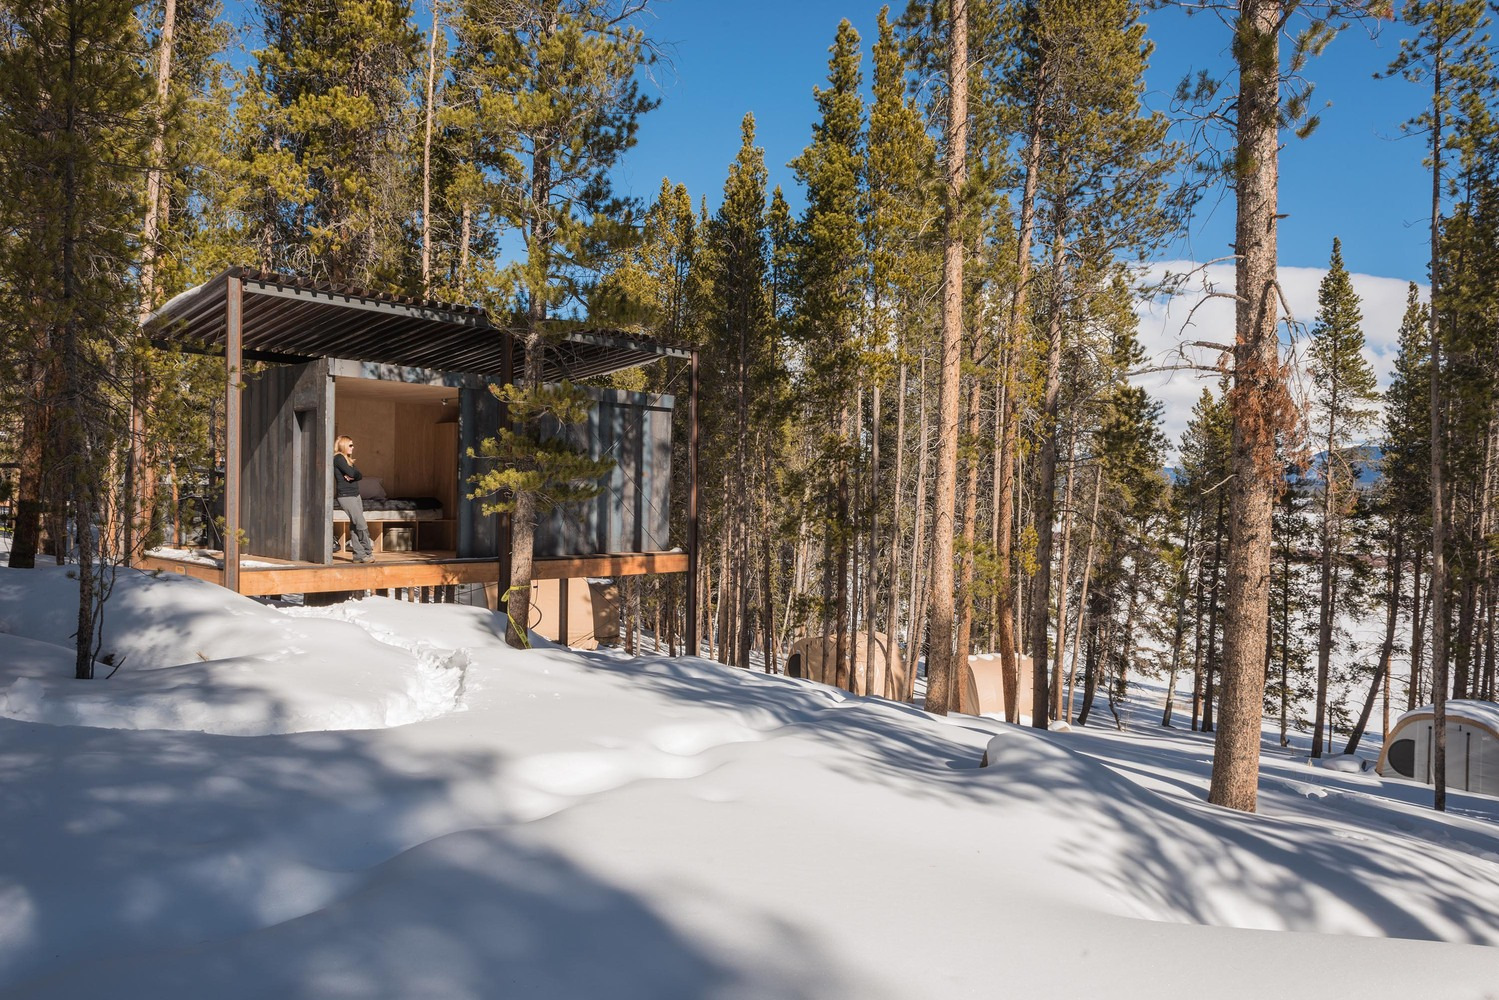 cabin denver frame photo caf a by cabins alpine modern alana paterson whistler